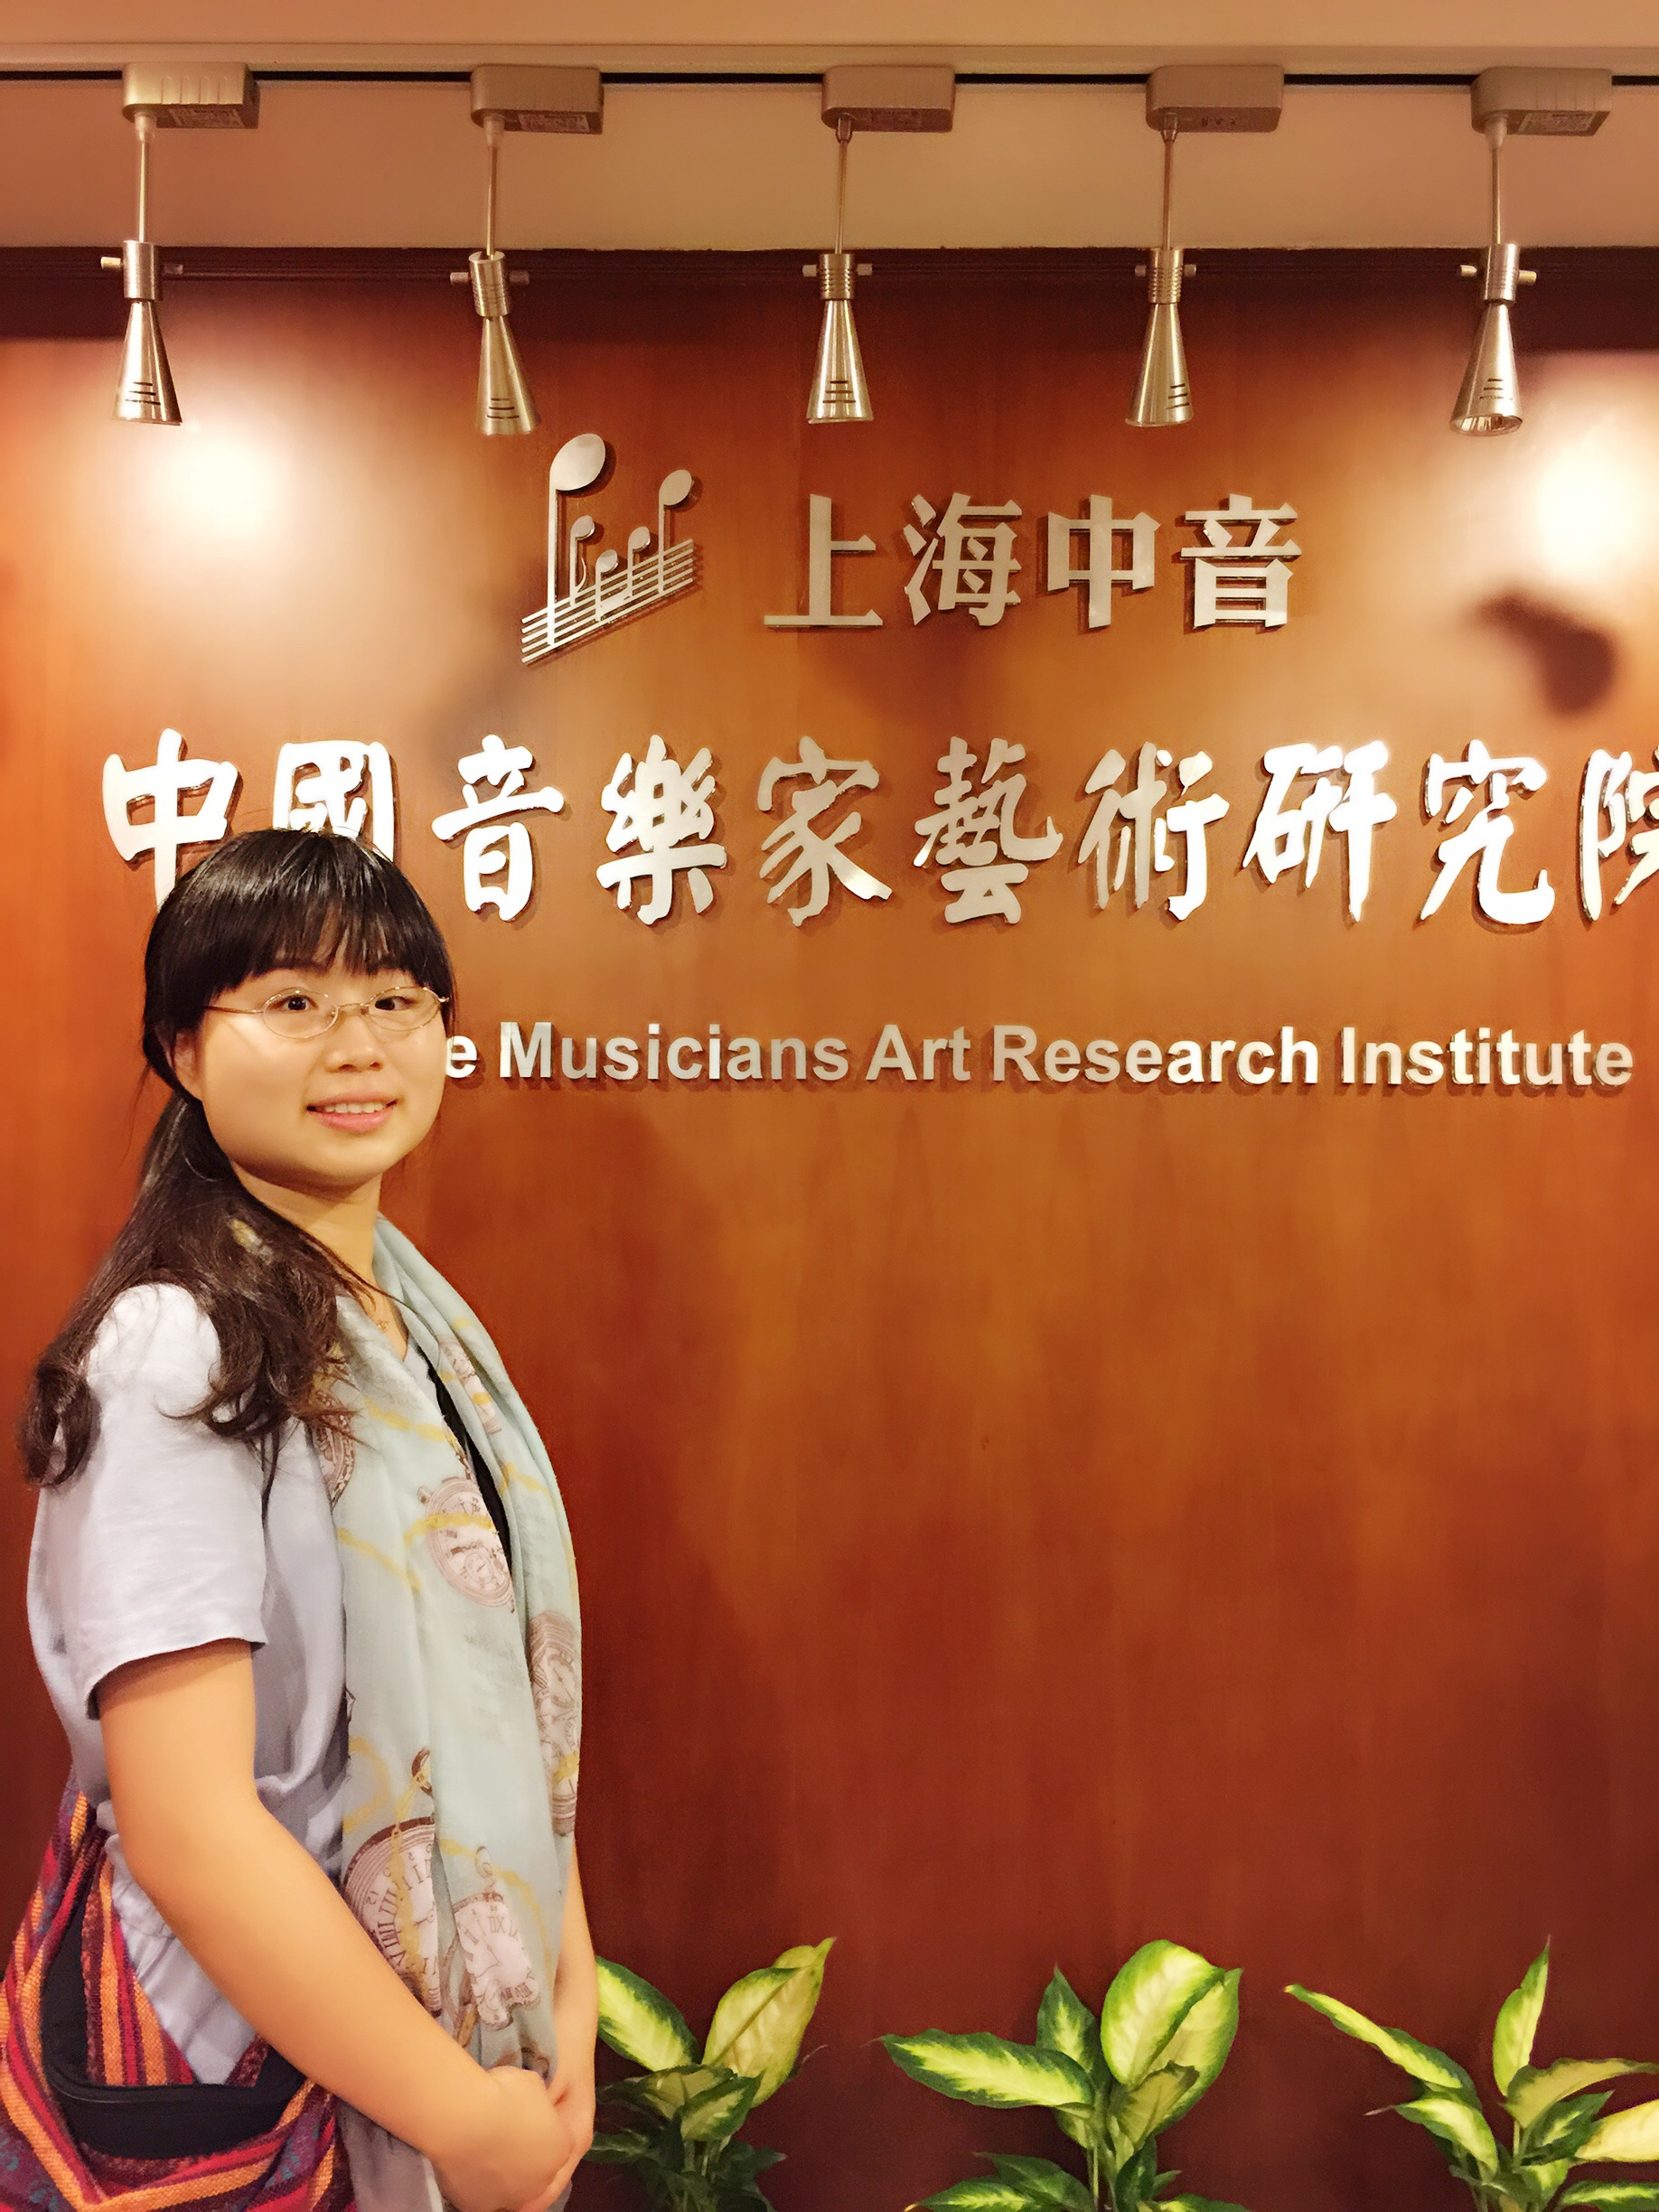 ChineseMusician Art Research